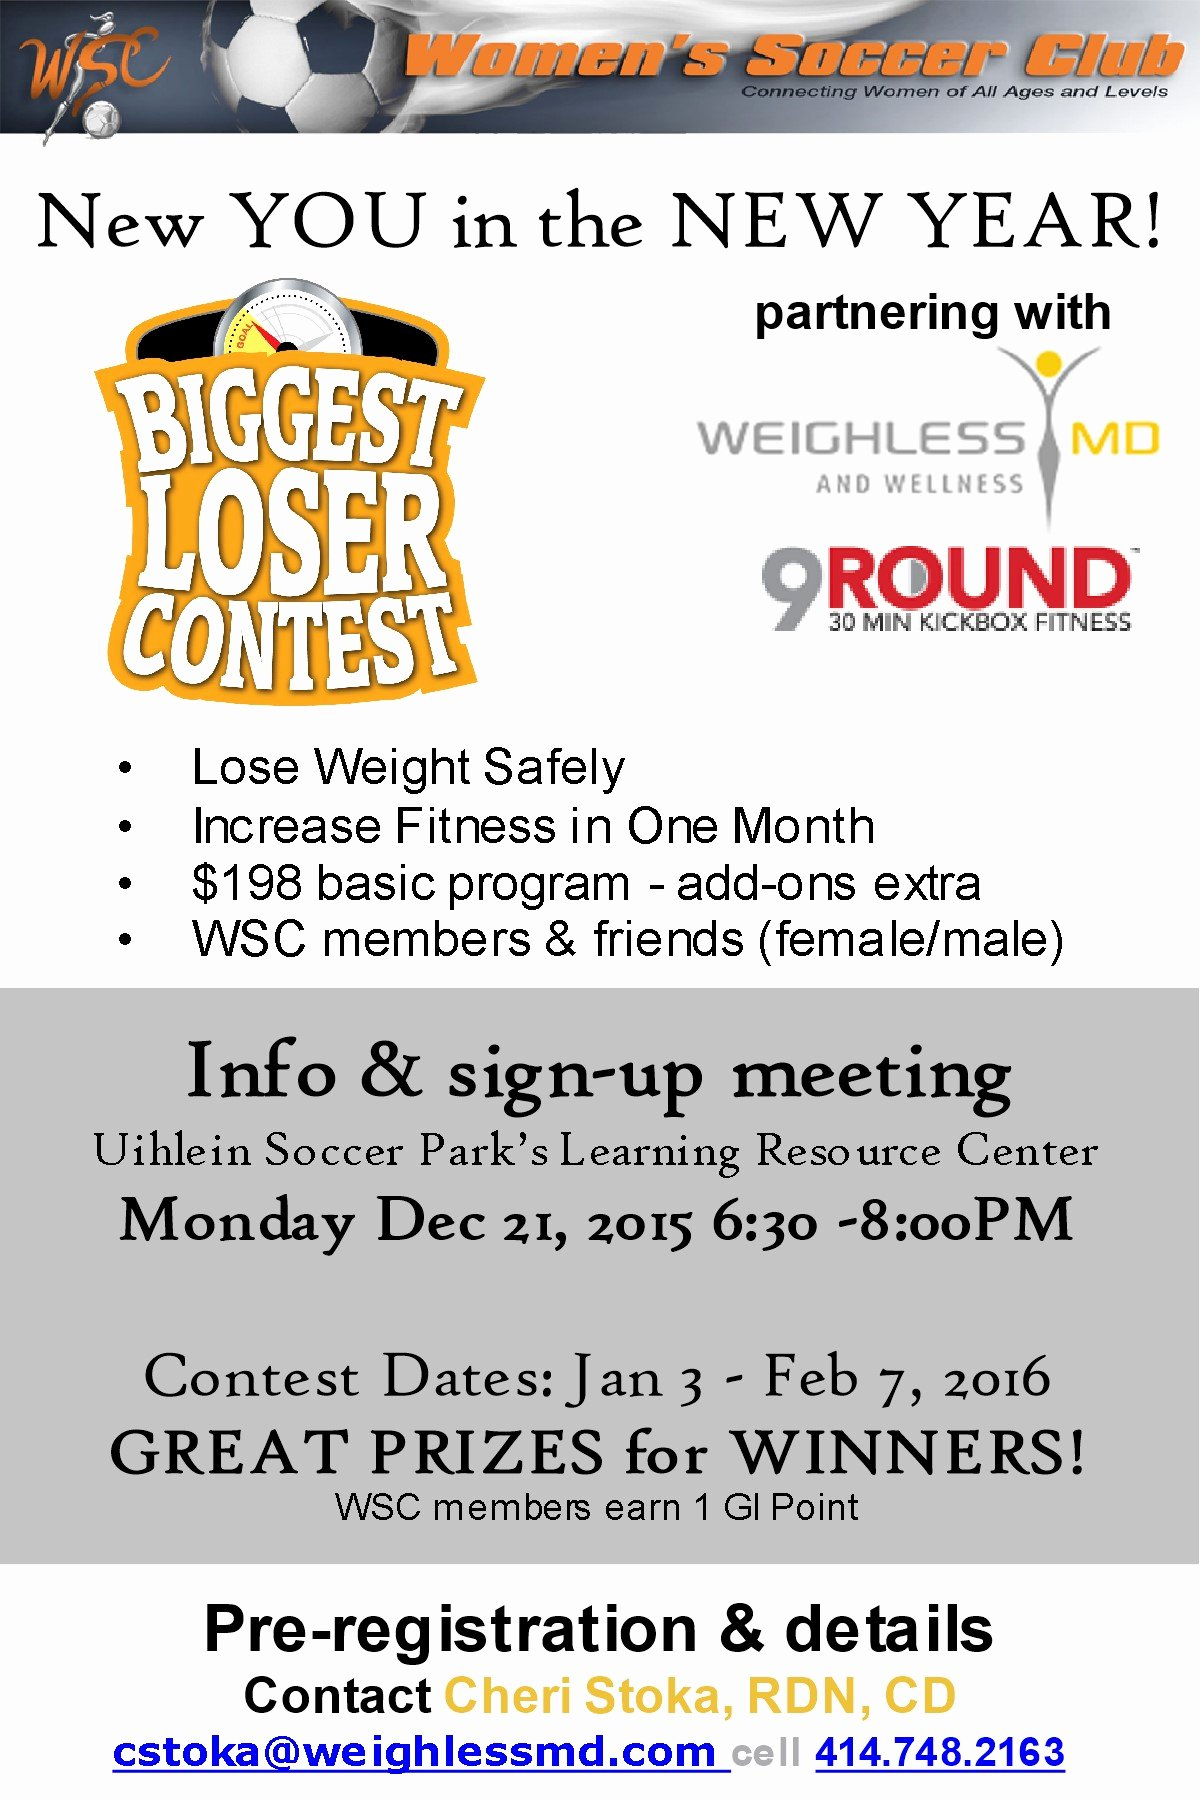 Biggest Loser Contest Flyer Template Beautiful Women S soccer Club